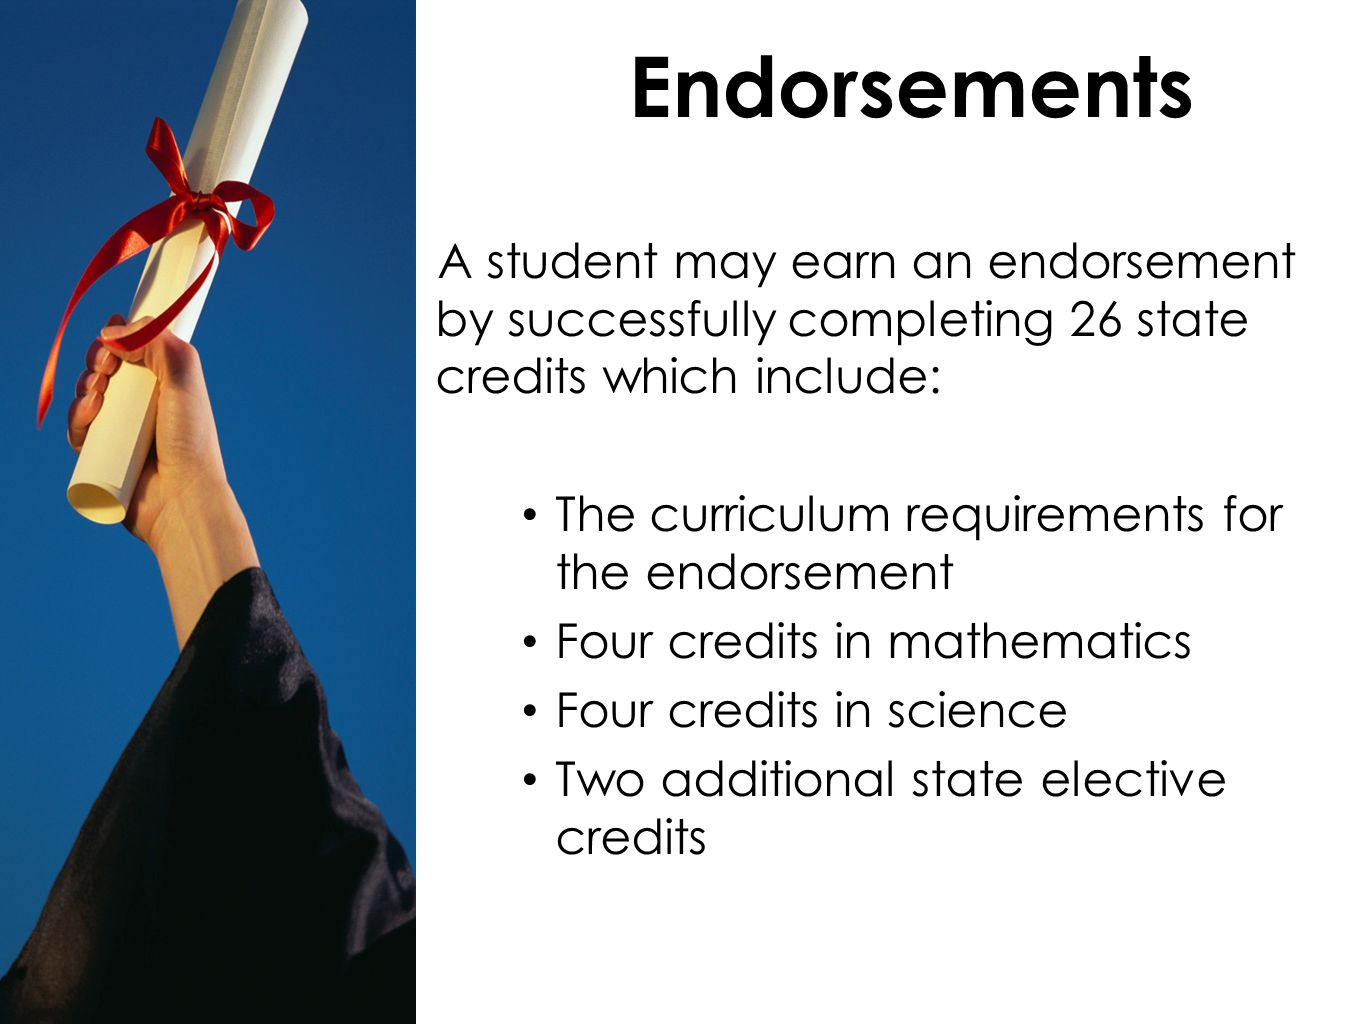 Endorsements A student may earn an endorsement by successfully completing 26 state credits which include: The curriculum requirements for the endorsement Four credits in mathematics Four credits in science Two additional state elective credits